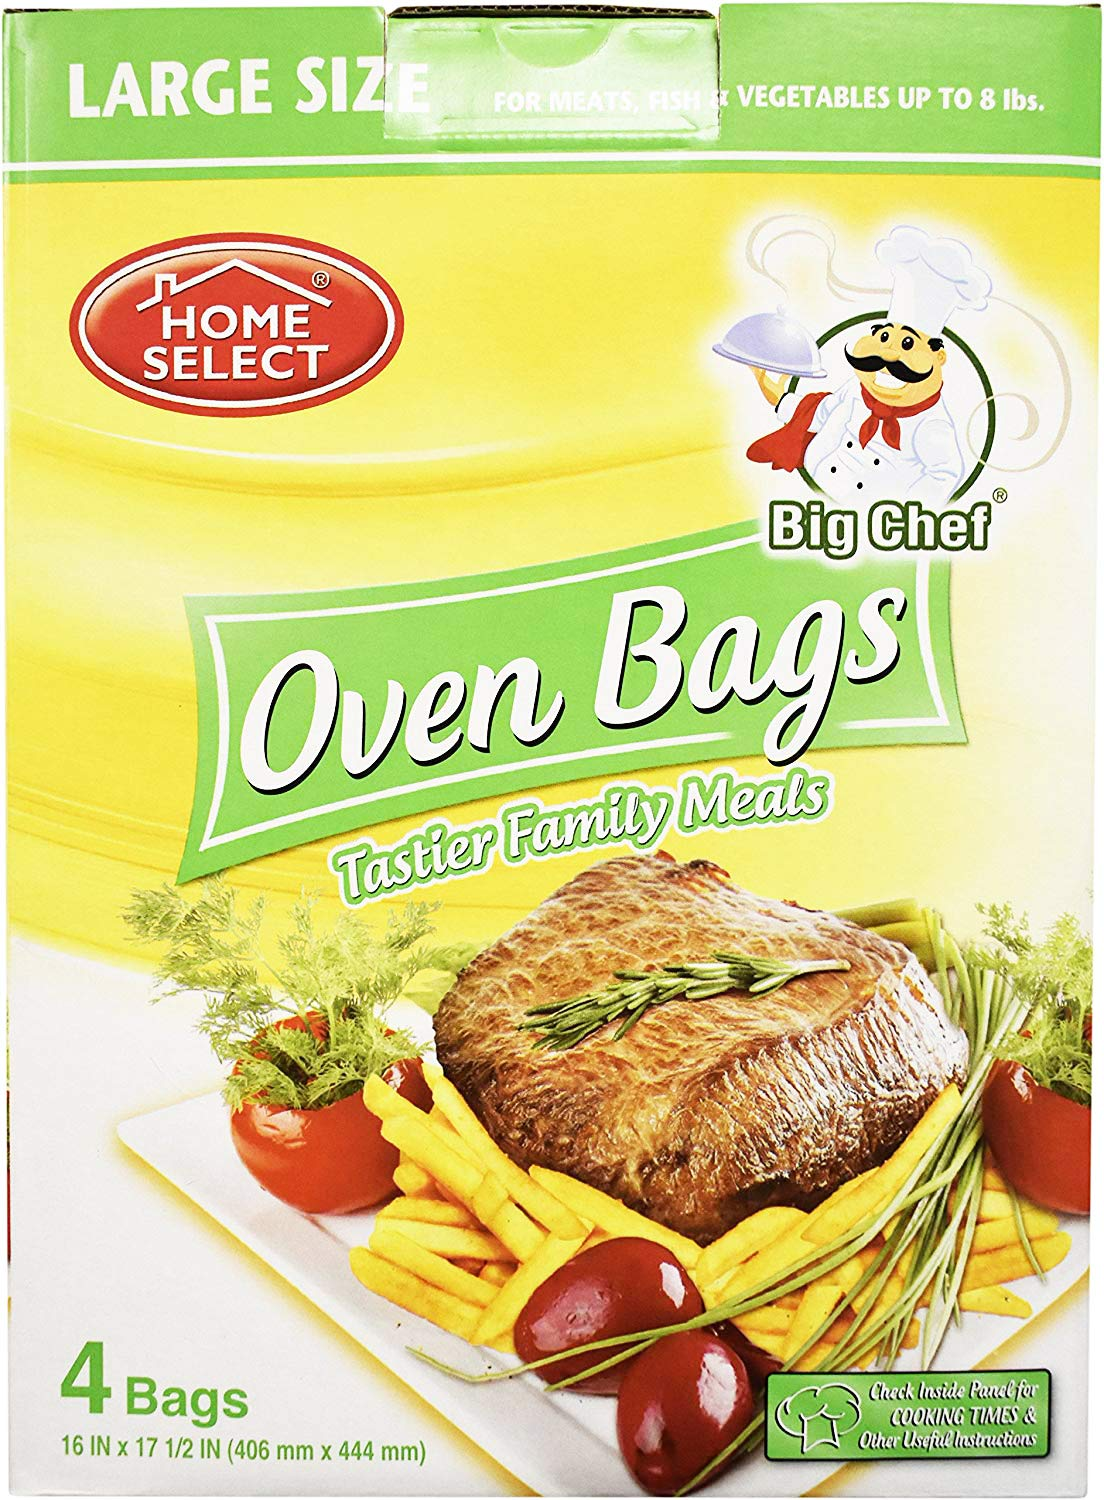 Home Select Oven Bags Large Size (16 Inch x 17.5 Inch) 4 Bags; for Meats, Fish & Vegetables up to 8 lbs